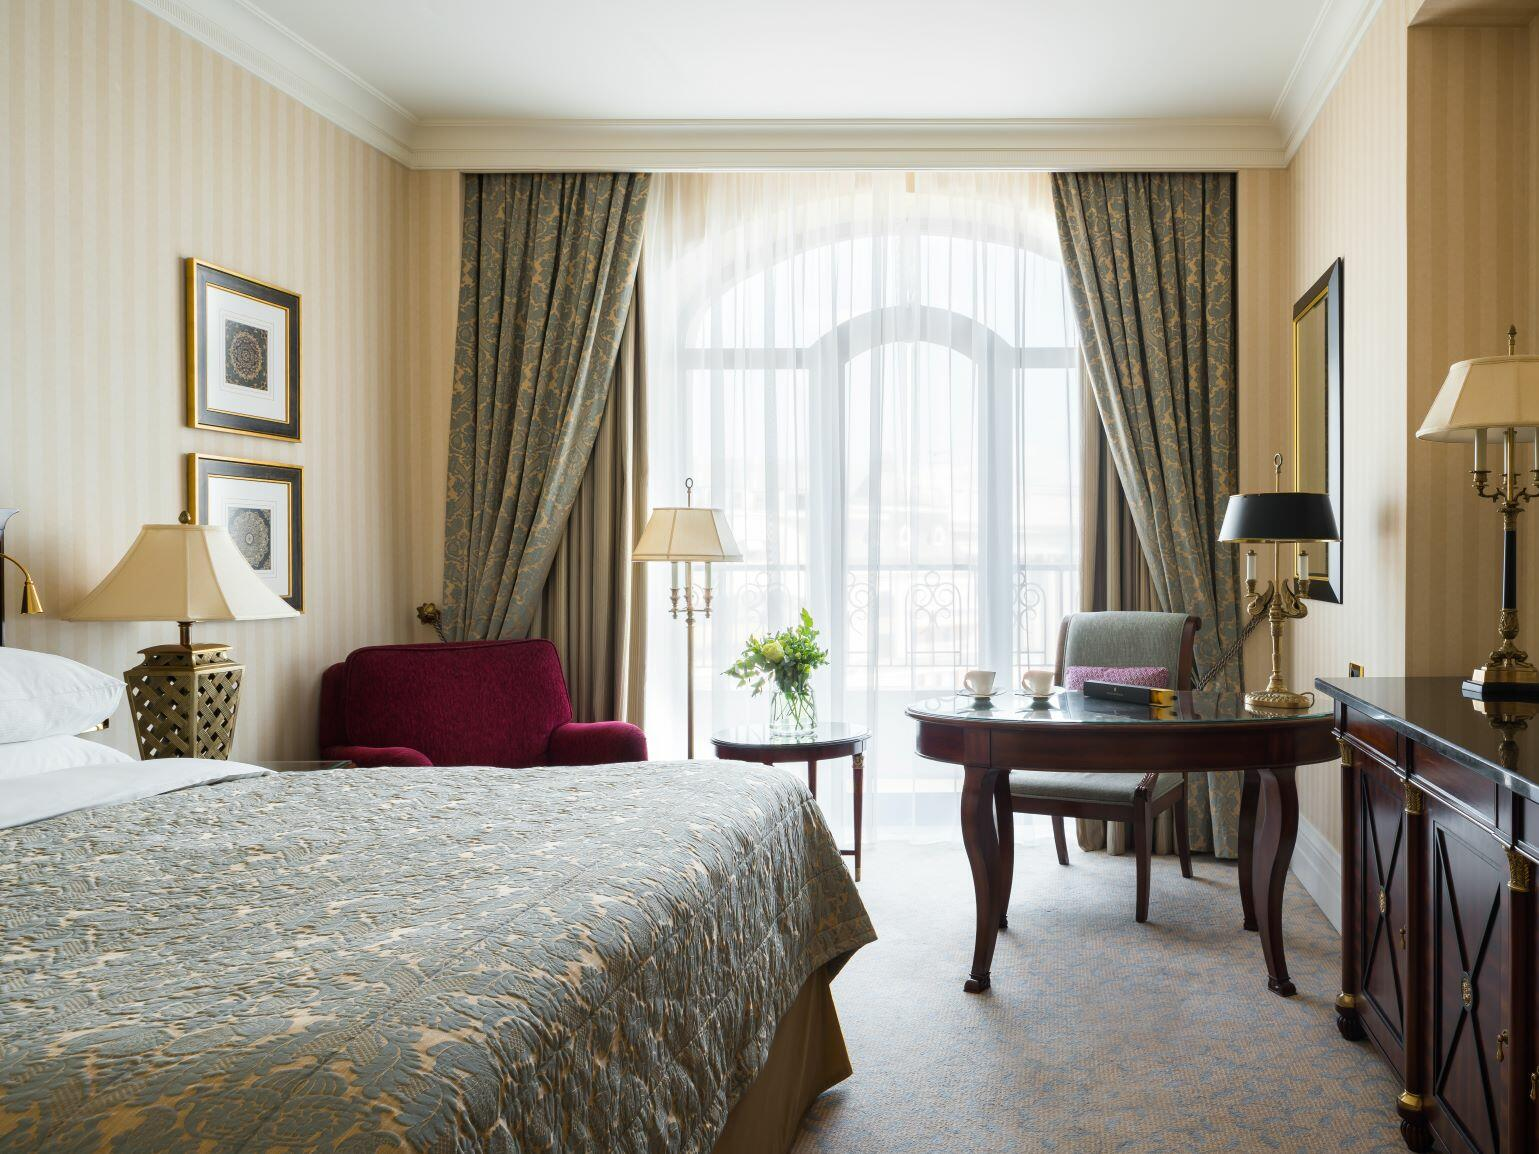 Enjoy King Deluxe with Club access at Intercontinental Kyiv